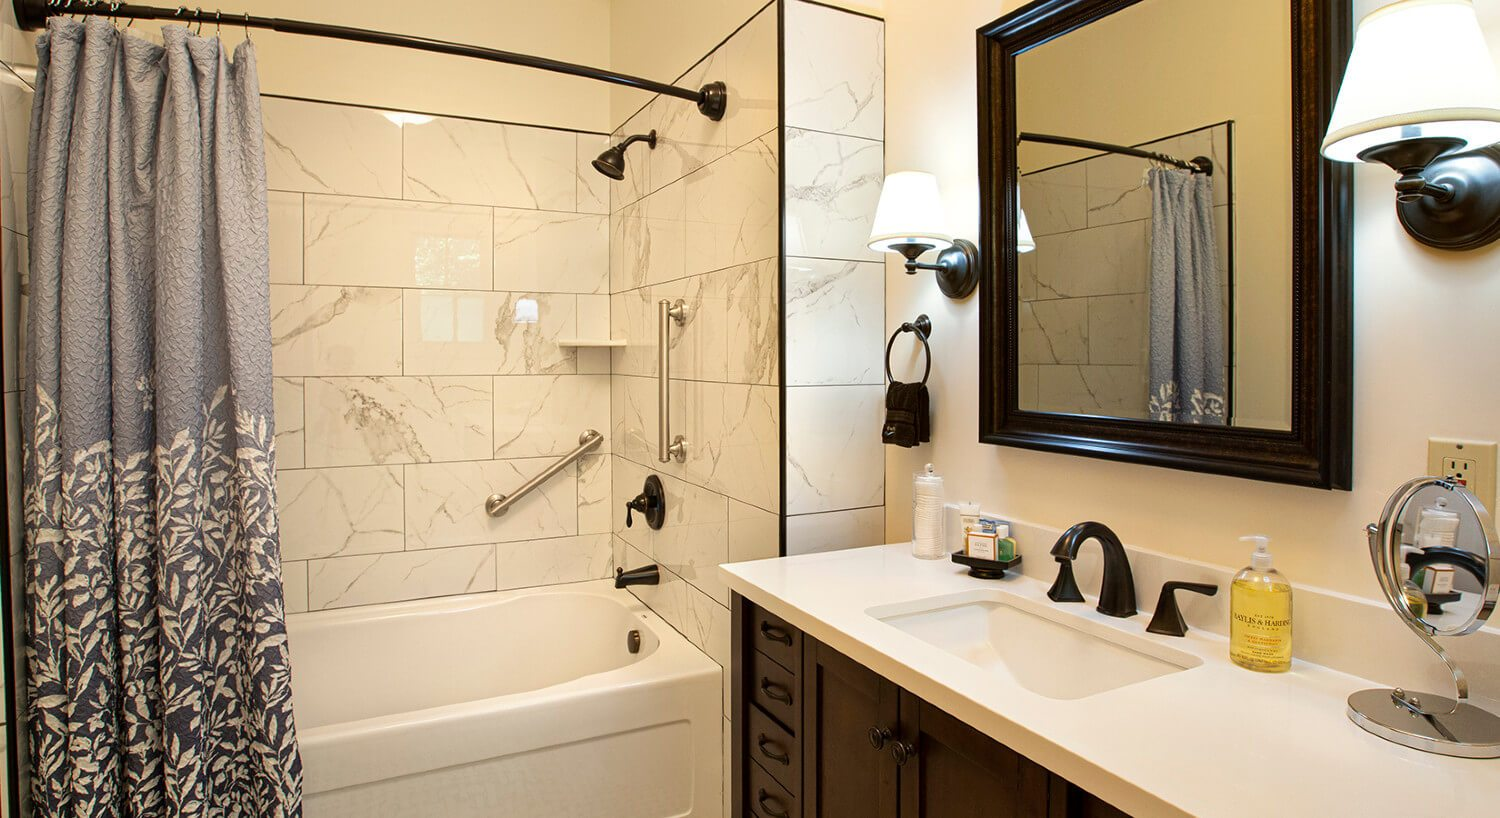 Ivory bathroom with white tiled tub and shower, white and gray shower curtain and white pedestal sink